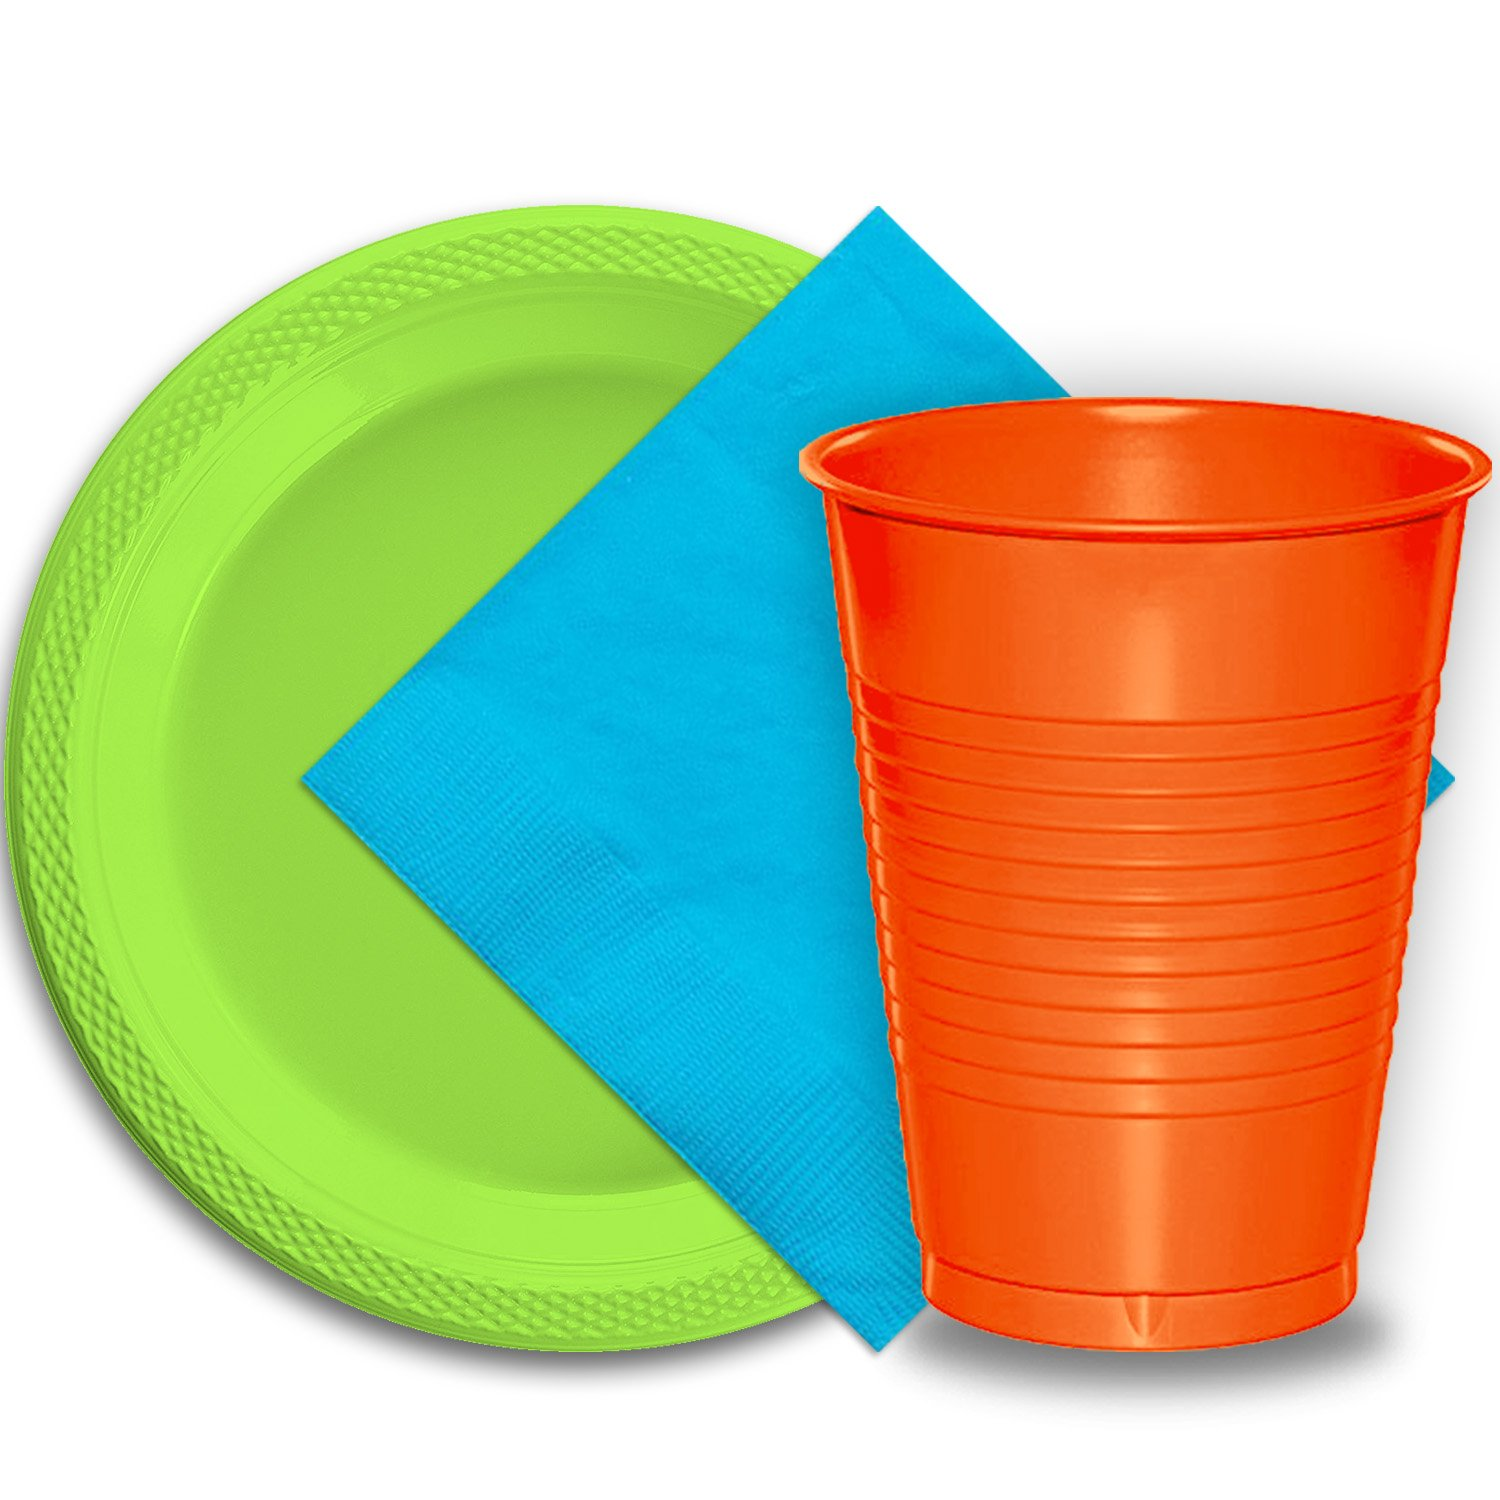 50 Lime Green Plastic Plates (9''), 50 Orange Plastic Cups (12 oz.), and 50 Aqua Paper Napkins, Dazzelling Colored Disposable Party Supplies Tableware Set for Fifty Guests.